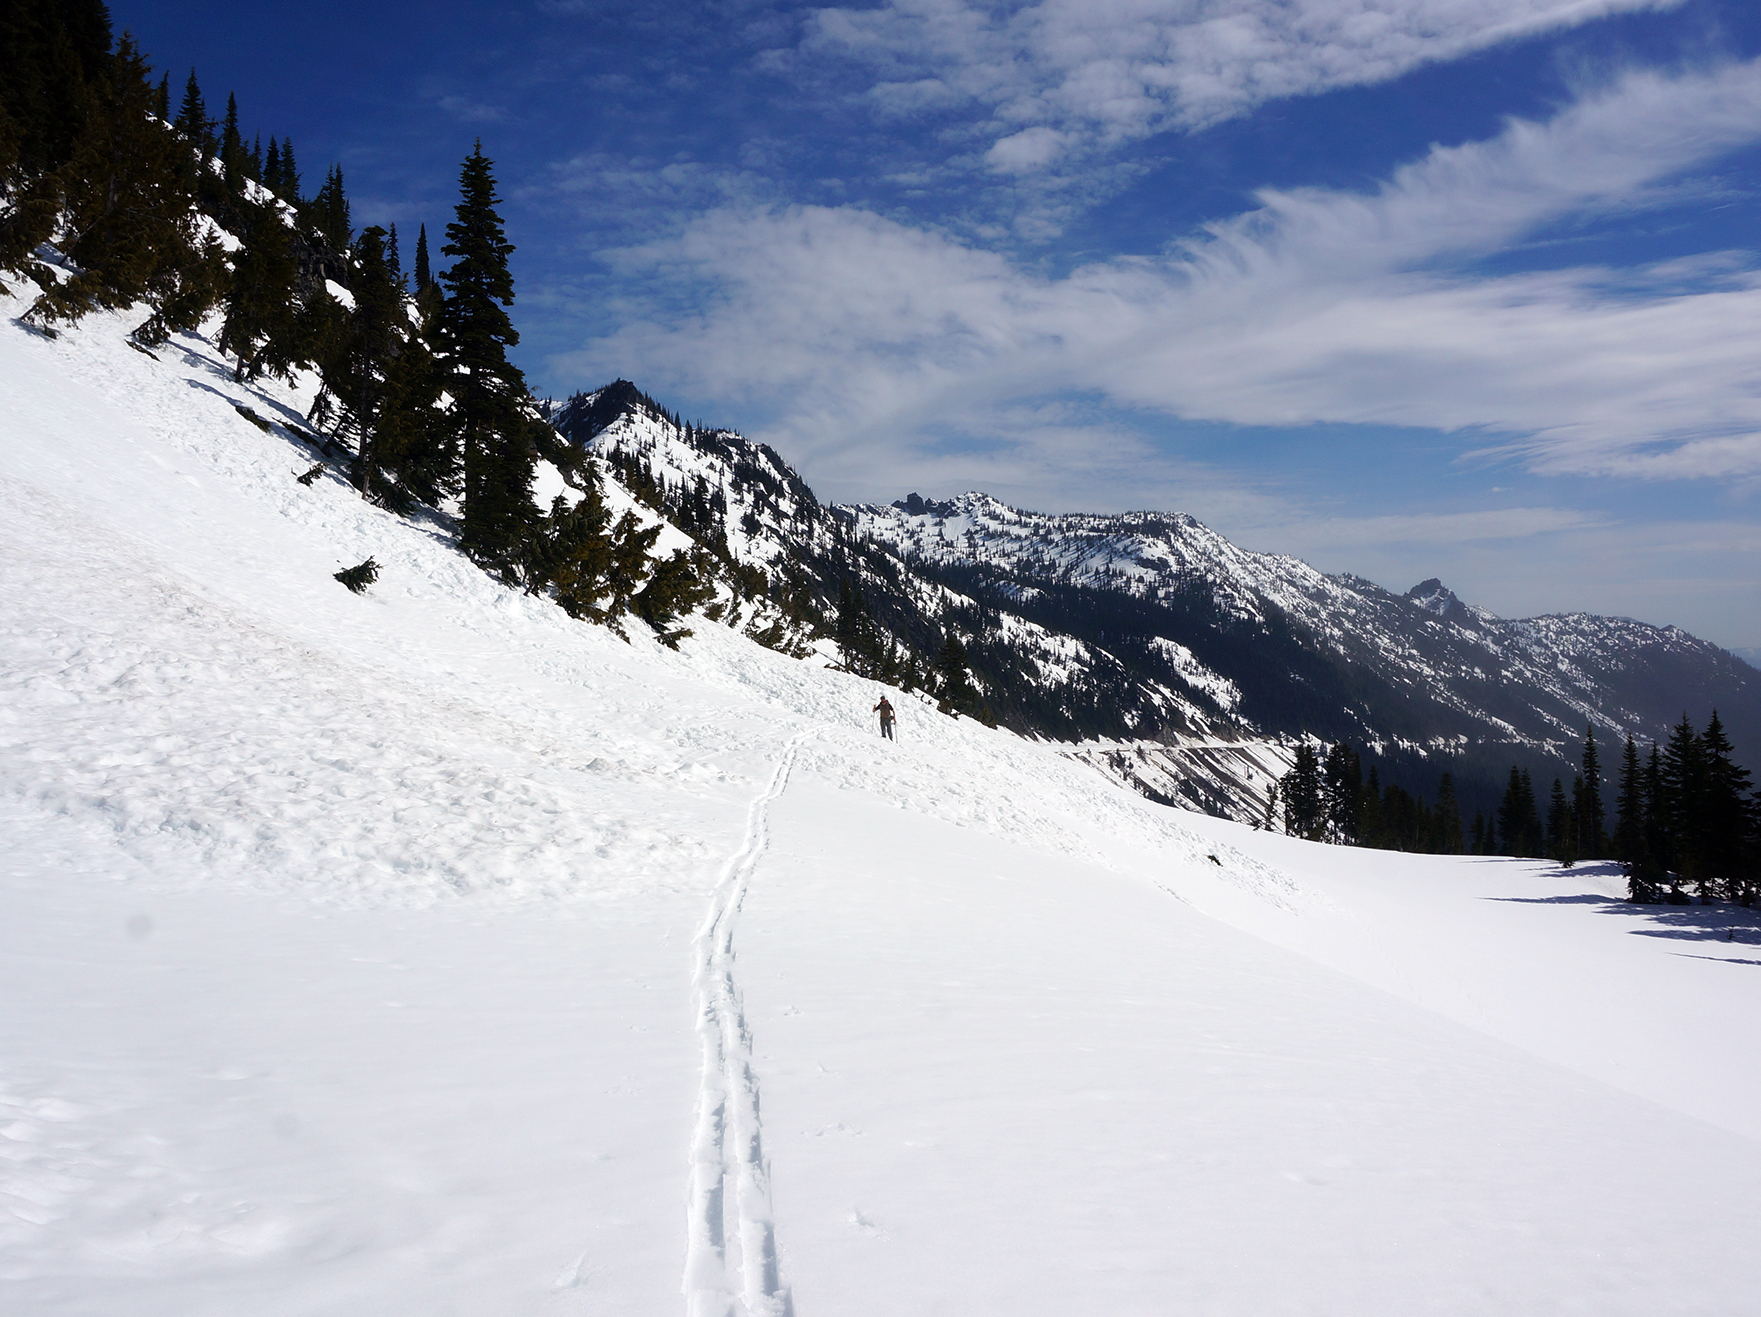 Northwest avalanche center avalanche region forecast nwac staff working on weather stations at mt rainier wednesday reported firm and consolidated surface conditions in the morning breaking down to wet snow publicscrutiny Image collections